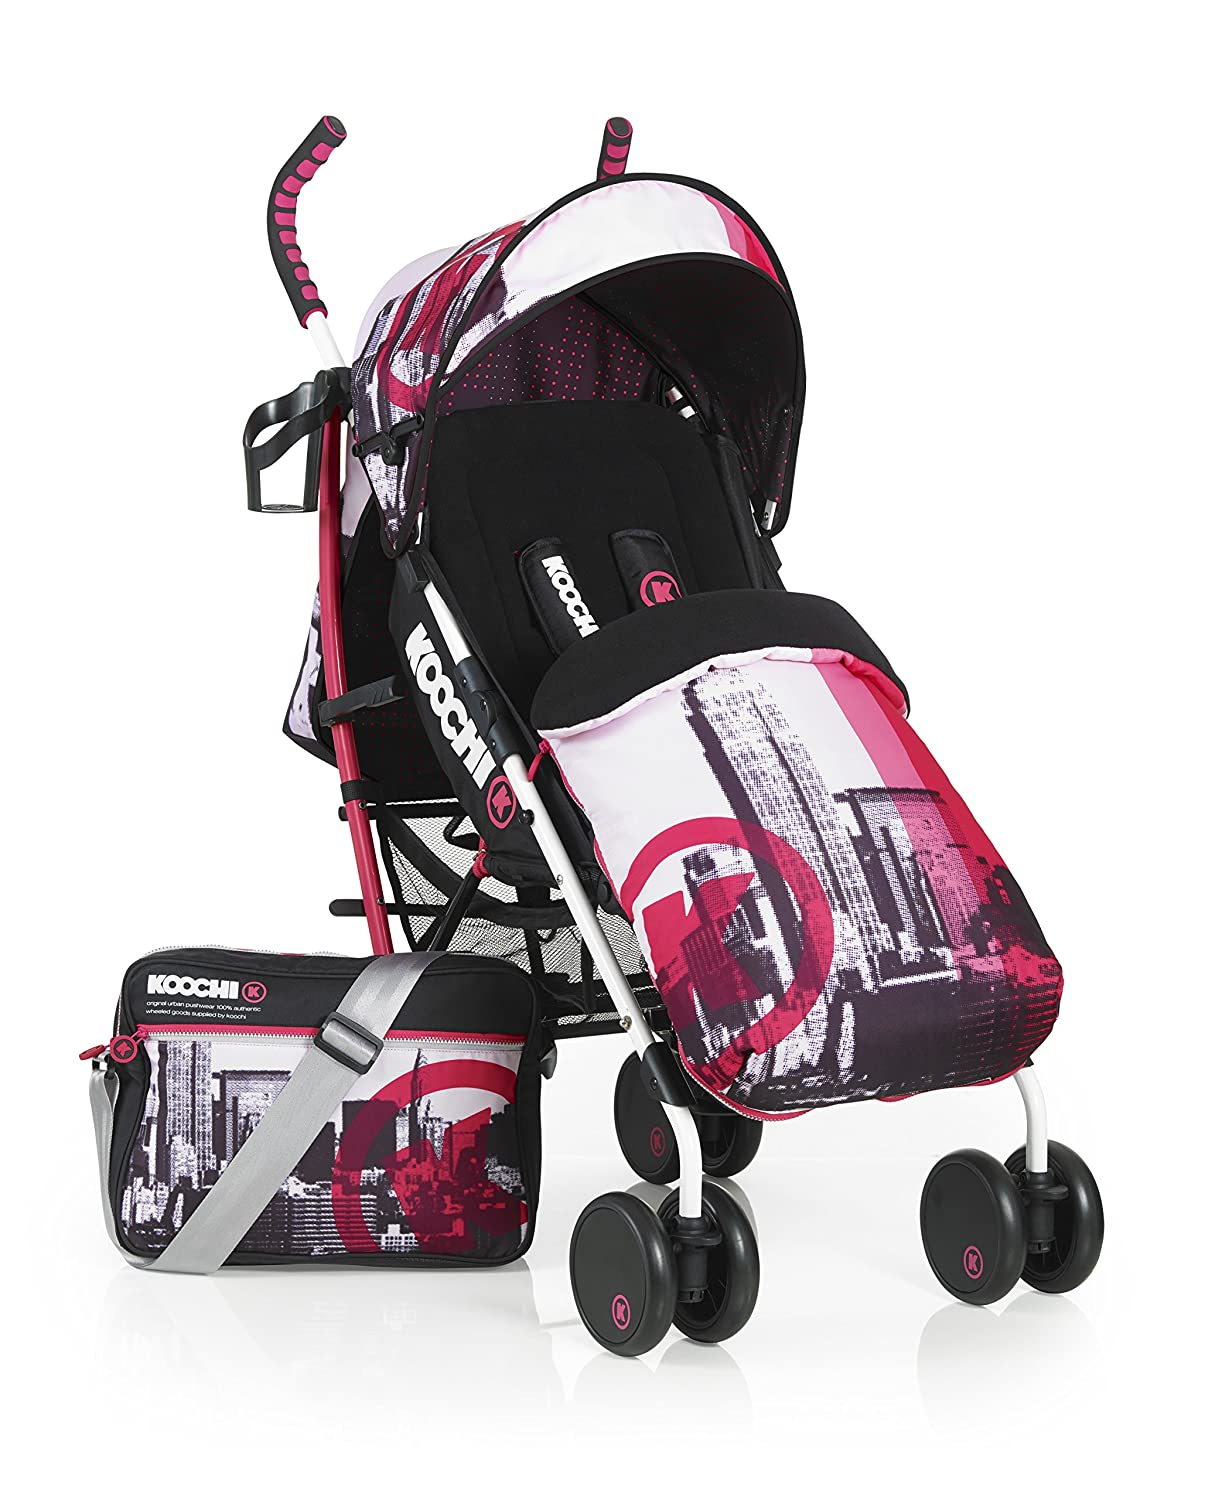 Koochi Speedstar Stroller Brooklyn PM